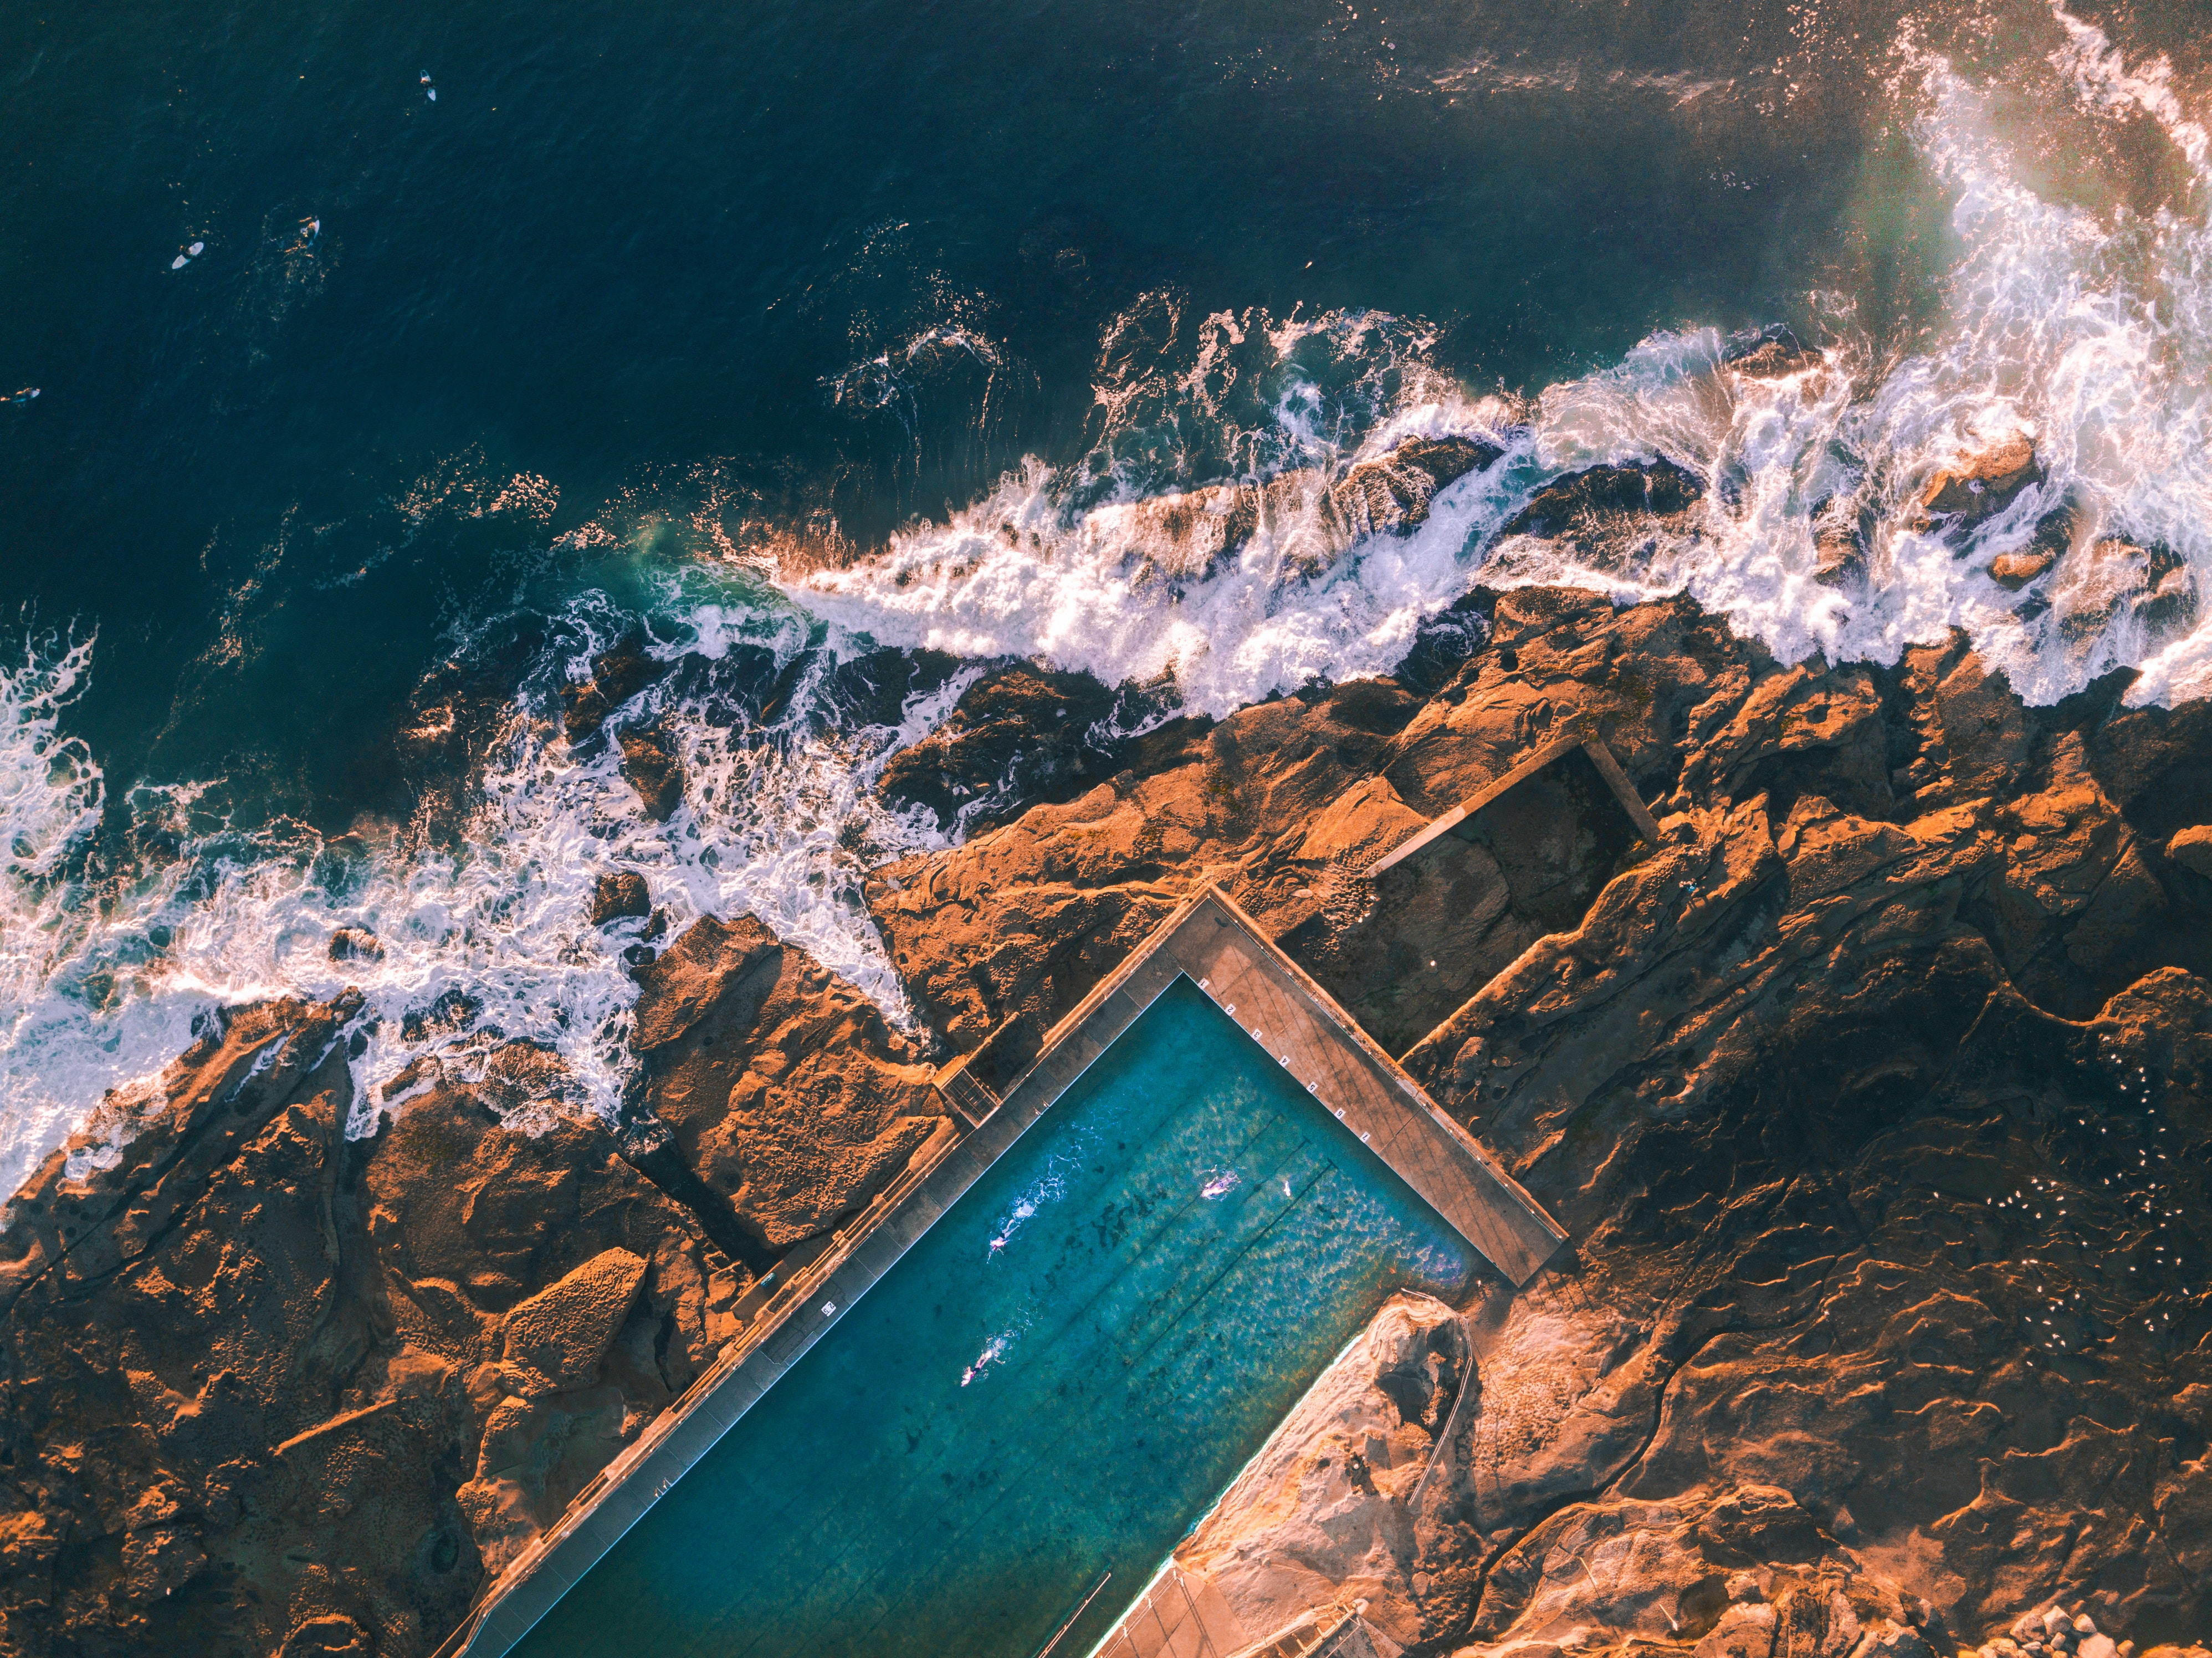 General 3992x2992 nature water rock aerial view landscape sea swimming pool